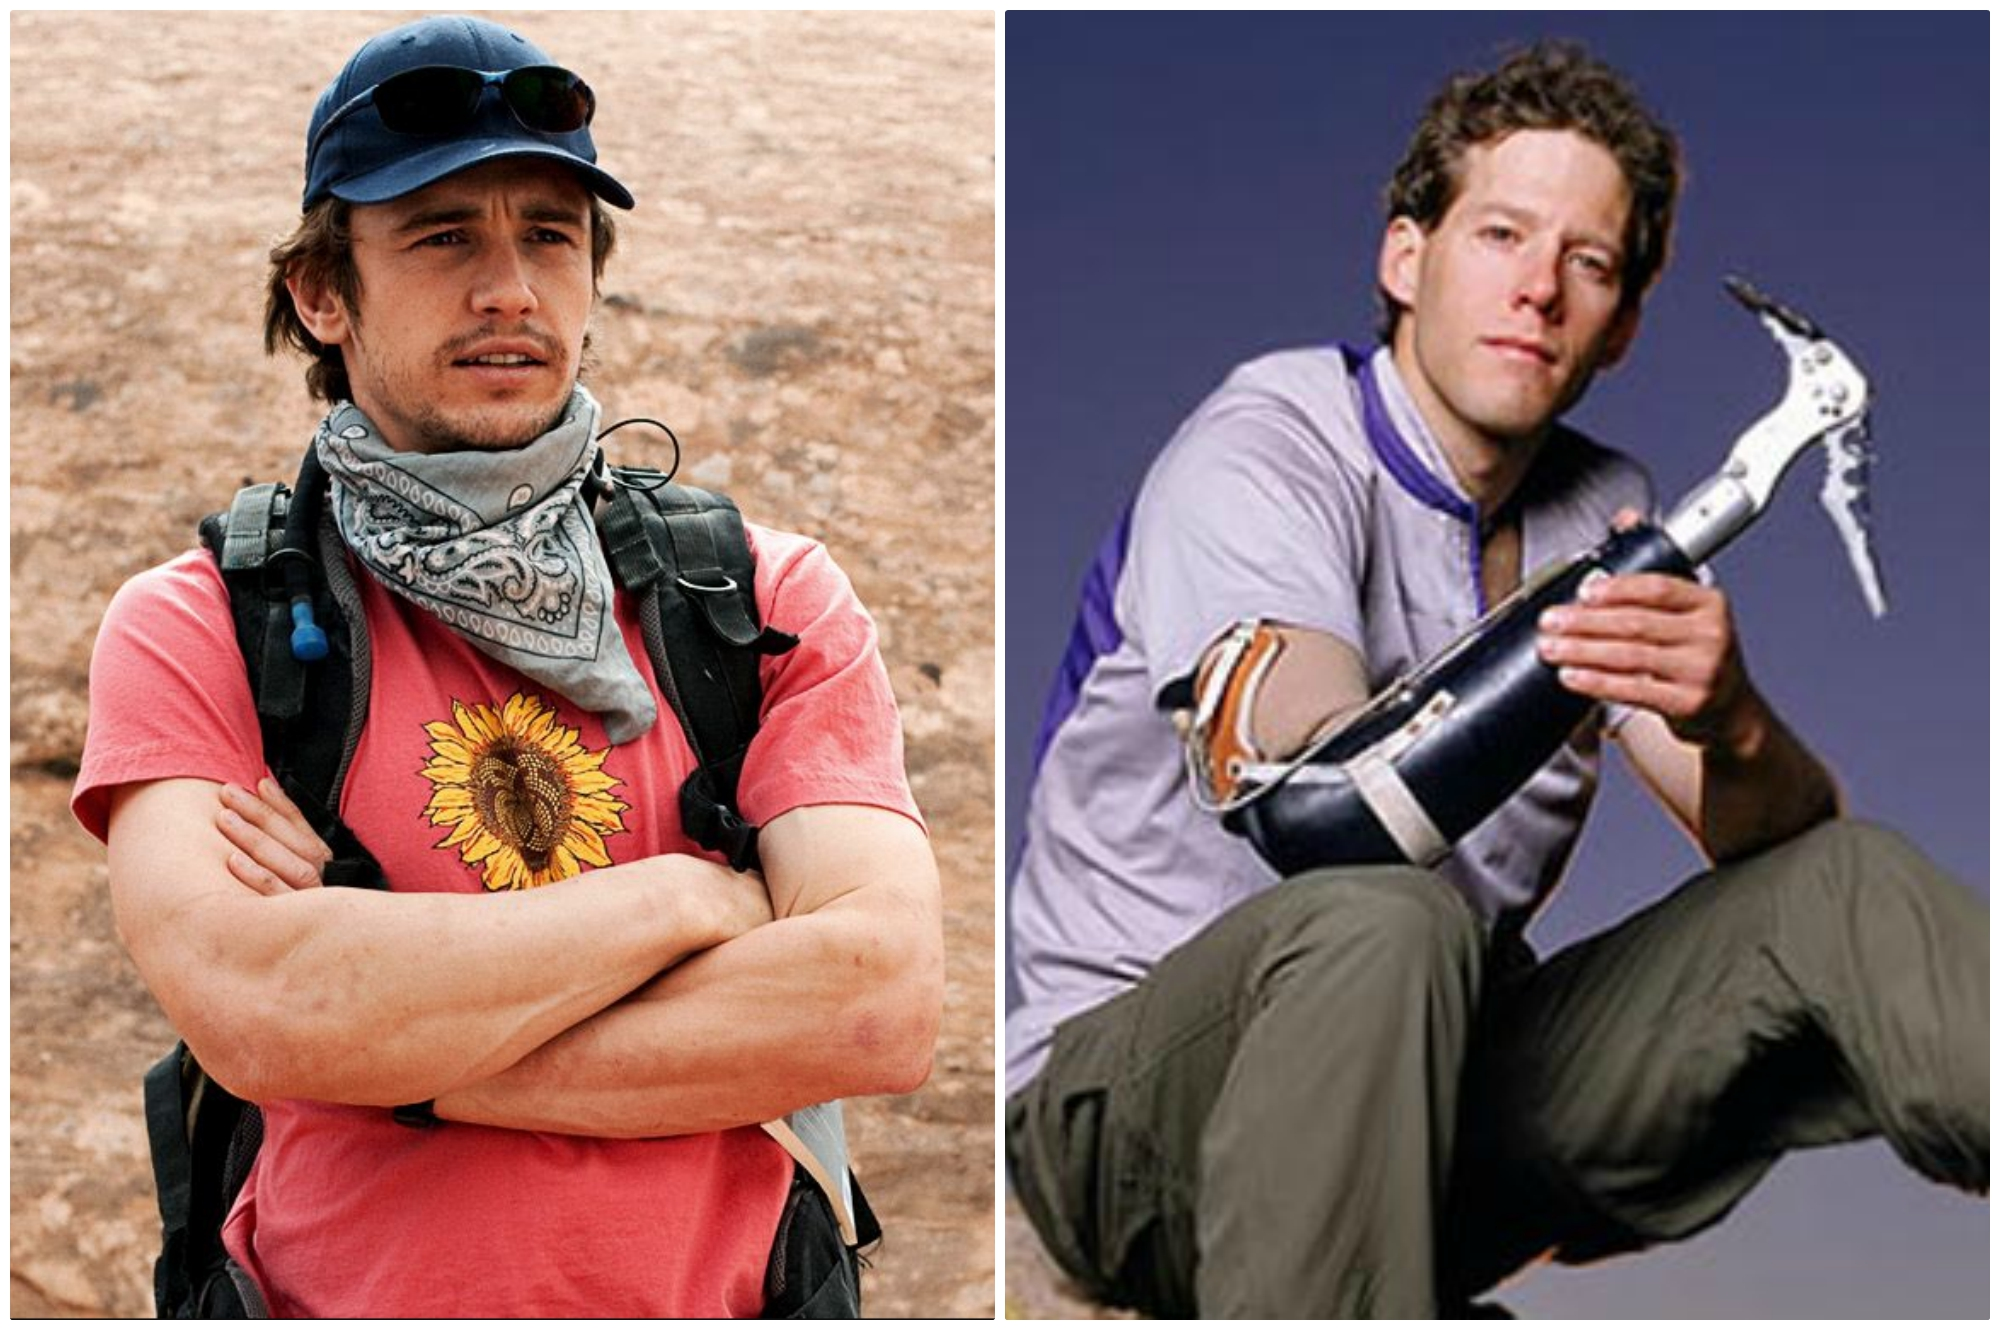 Movies - 127 hours